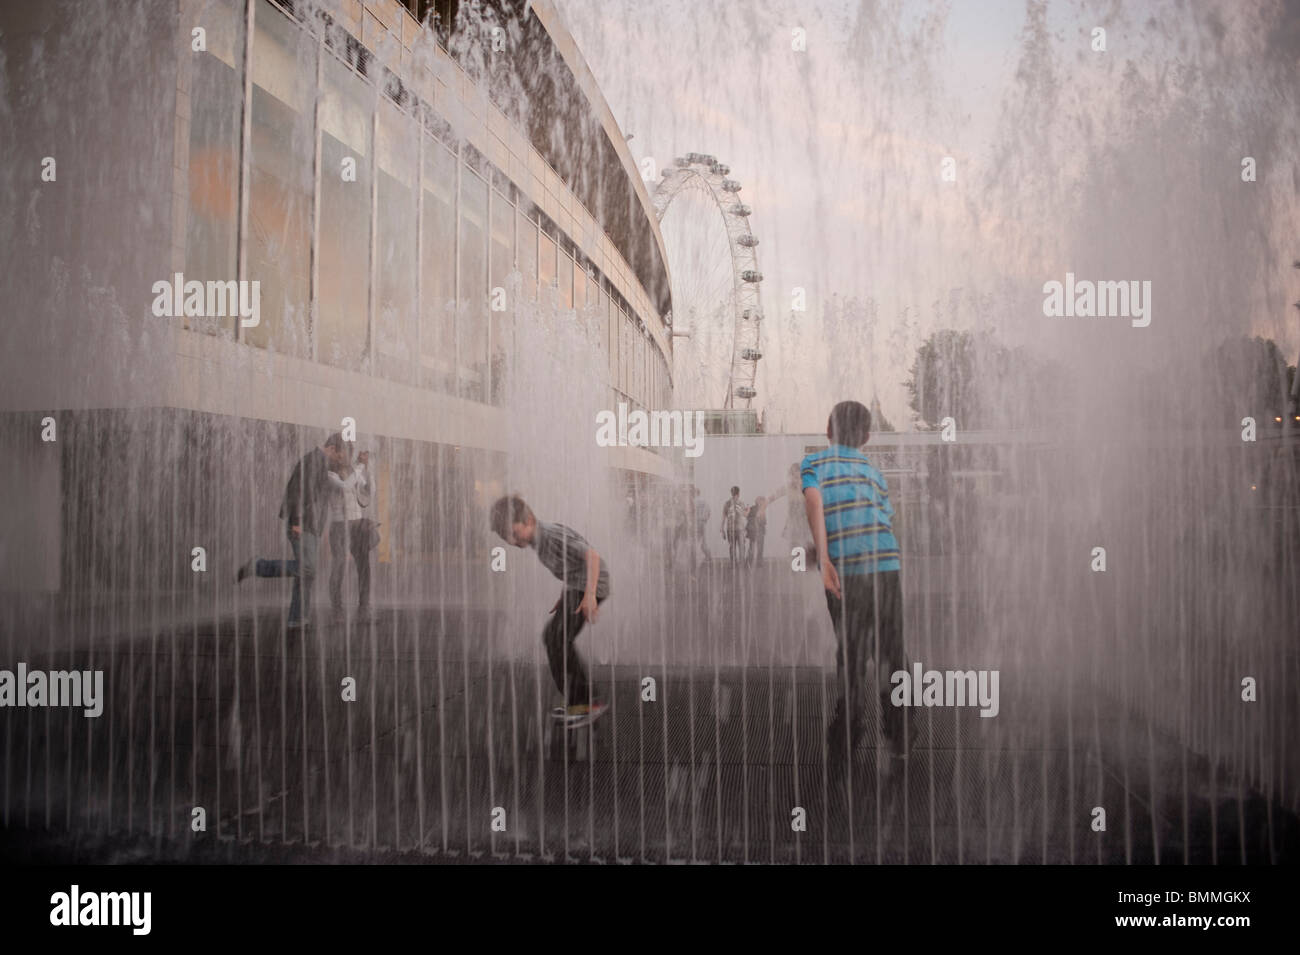 London, England, UK, South Bank District, Public Water Fountain, Children Playing - Stock Image